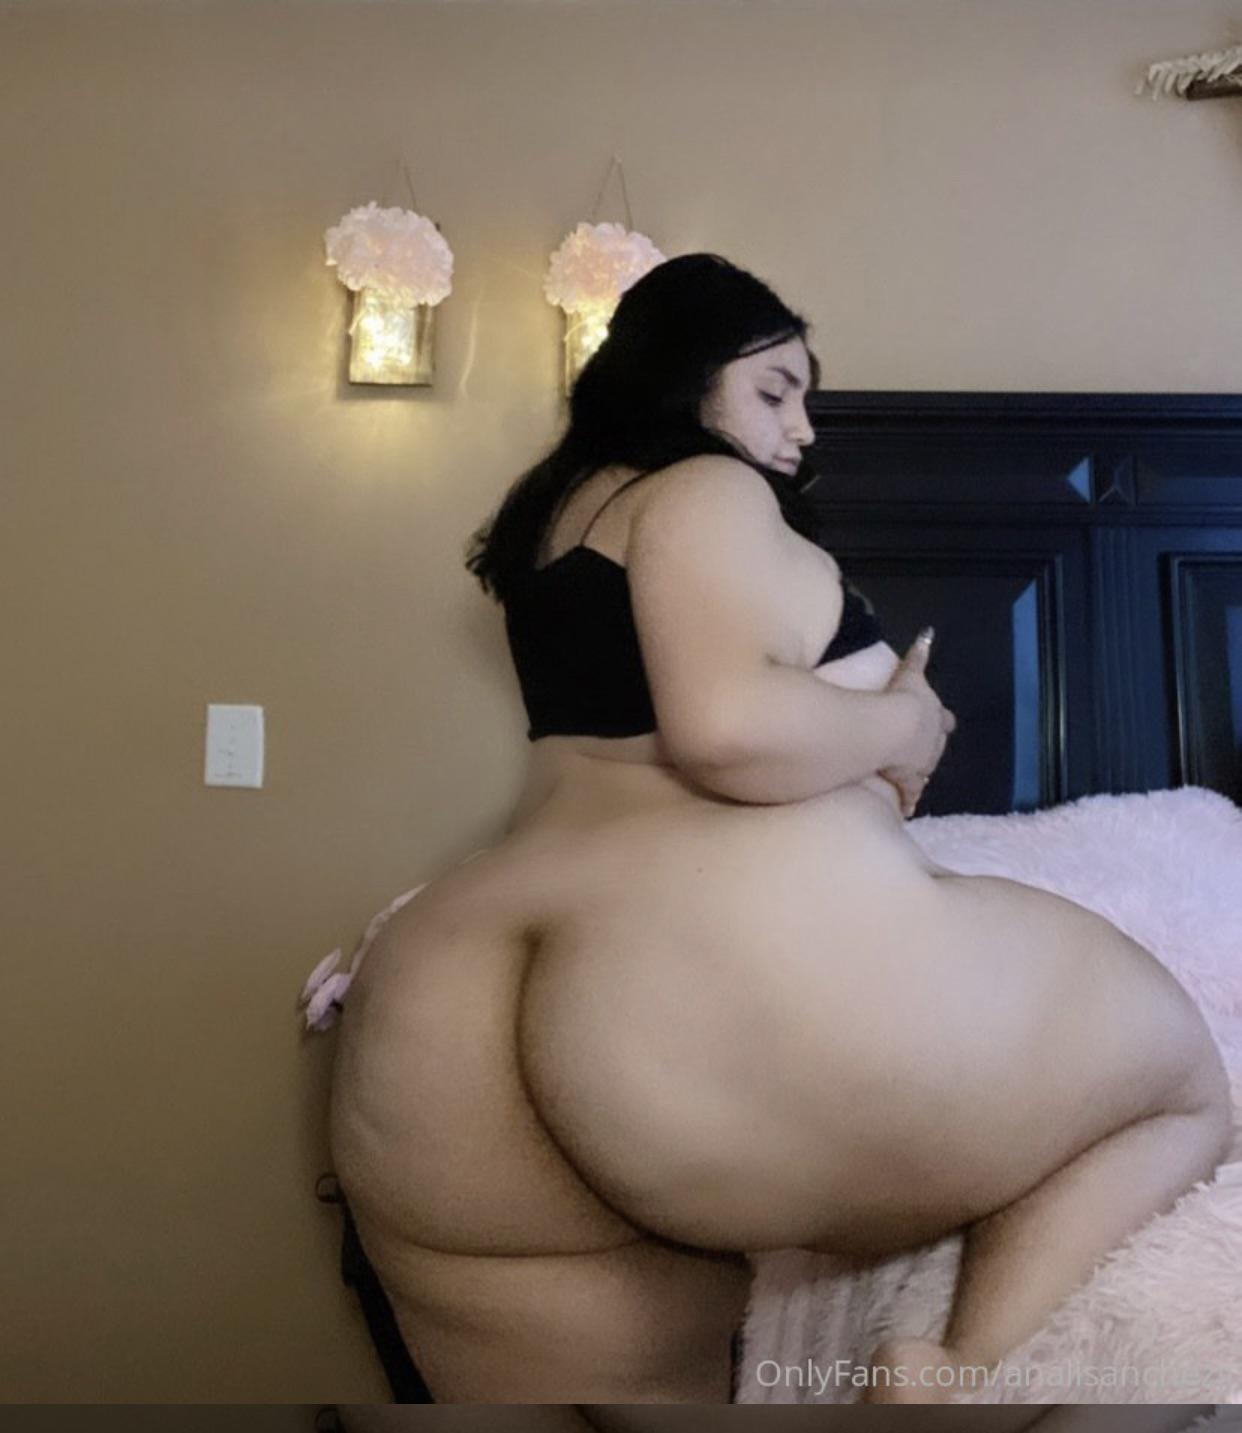 Anali Sanchez Nude Onlyfans Leaked!0012